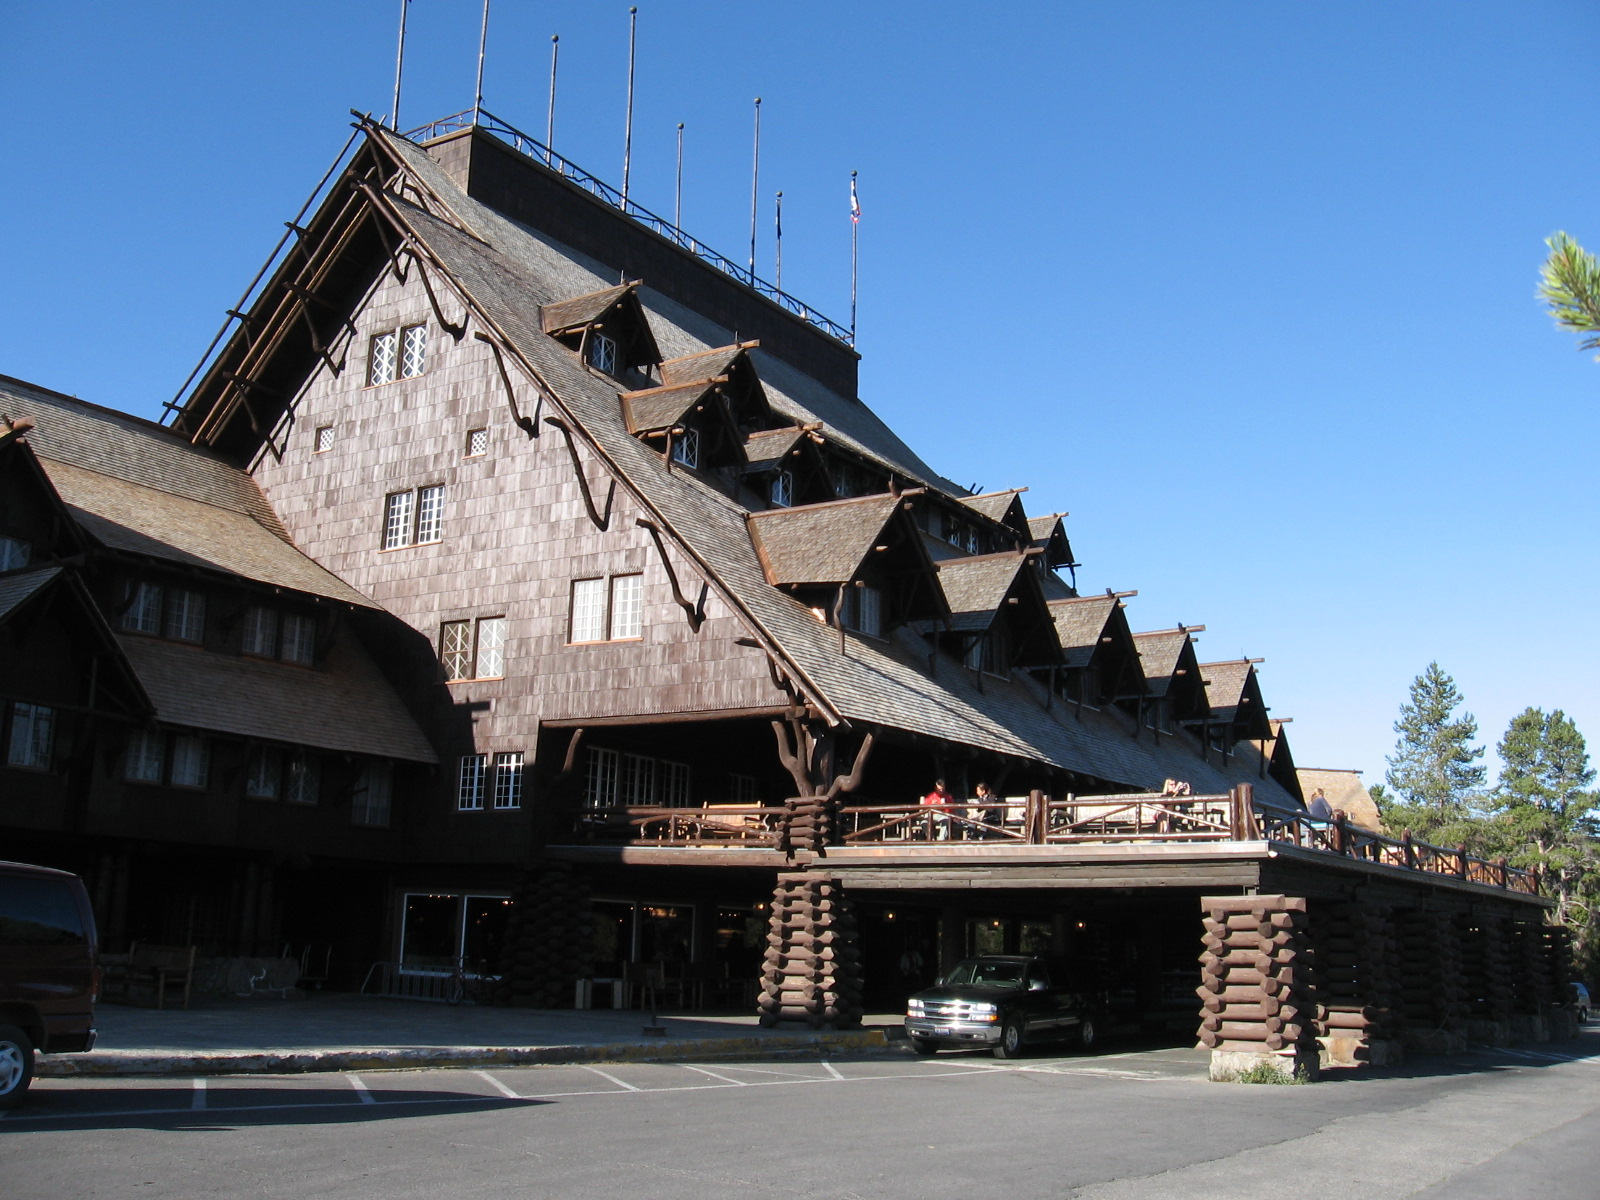 Old Faithful Inn, built 1904-5